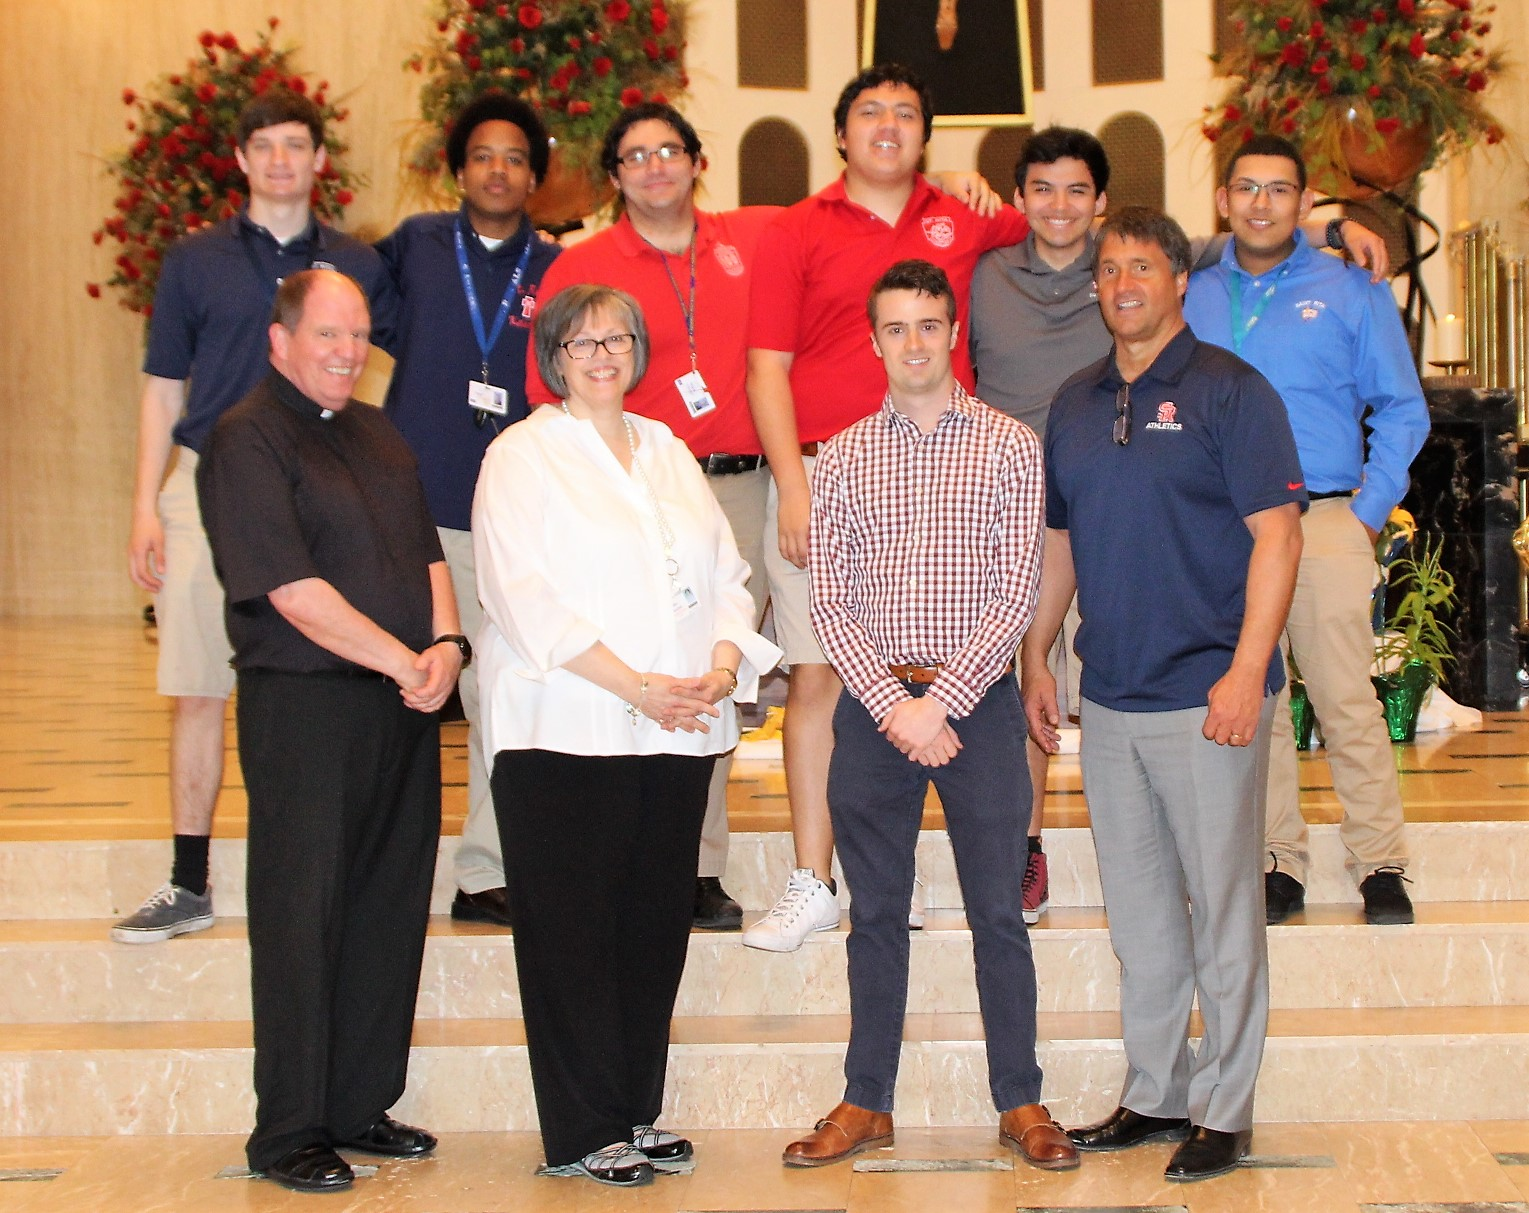 Fine Arts Recognition Award is presented for exceptional performance in the visual arts at St. Rita of Cascia High School during one's high school career. The Visual Arts Award went to:Dan Villegas.  The award for exceptional performance in the musical arts was presented to:Leo Hennessey,JP Hernandez,Stephen Luster,Nick Schultz,Jon Carlo Soriano.